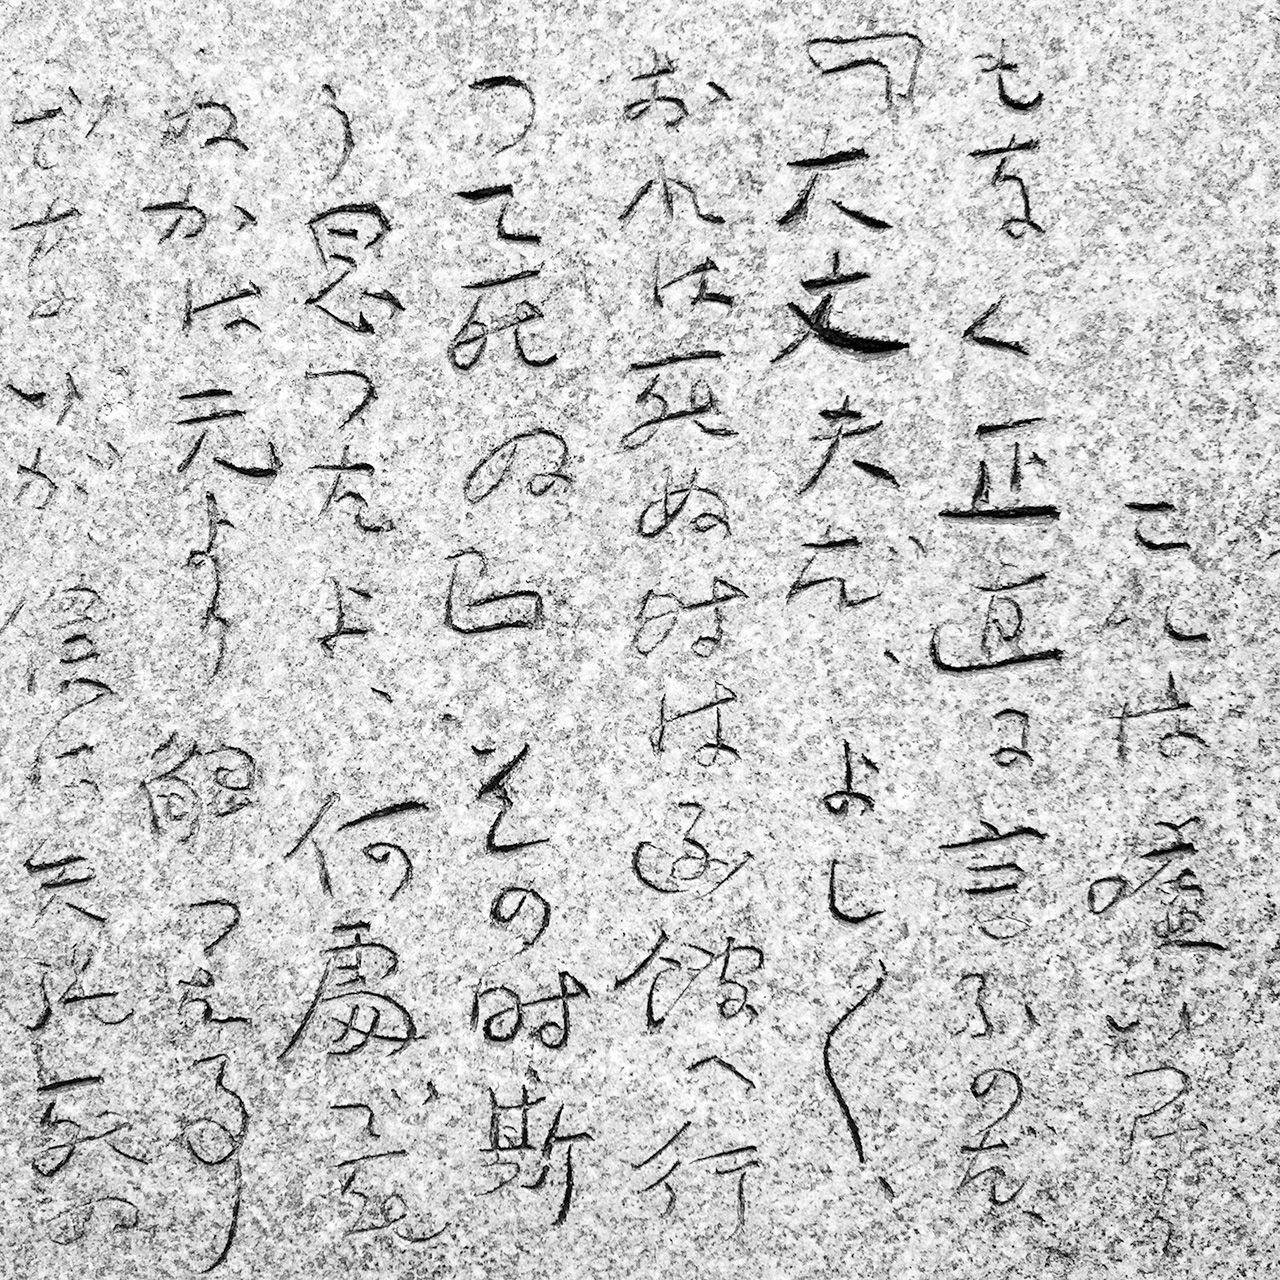 The Ishikawa family gravestone. The inscription is from a letter to Miyazaki Ikuu, who offered the family both moral and practical support, in which Takuboku expresses his wish to end his days in Hakodate.